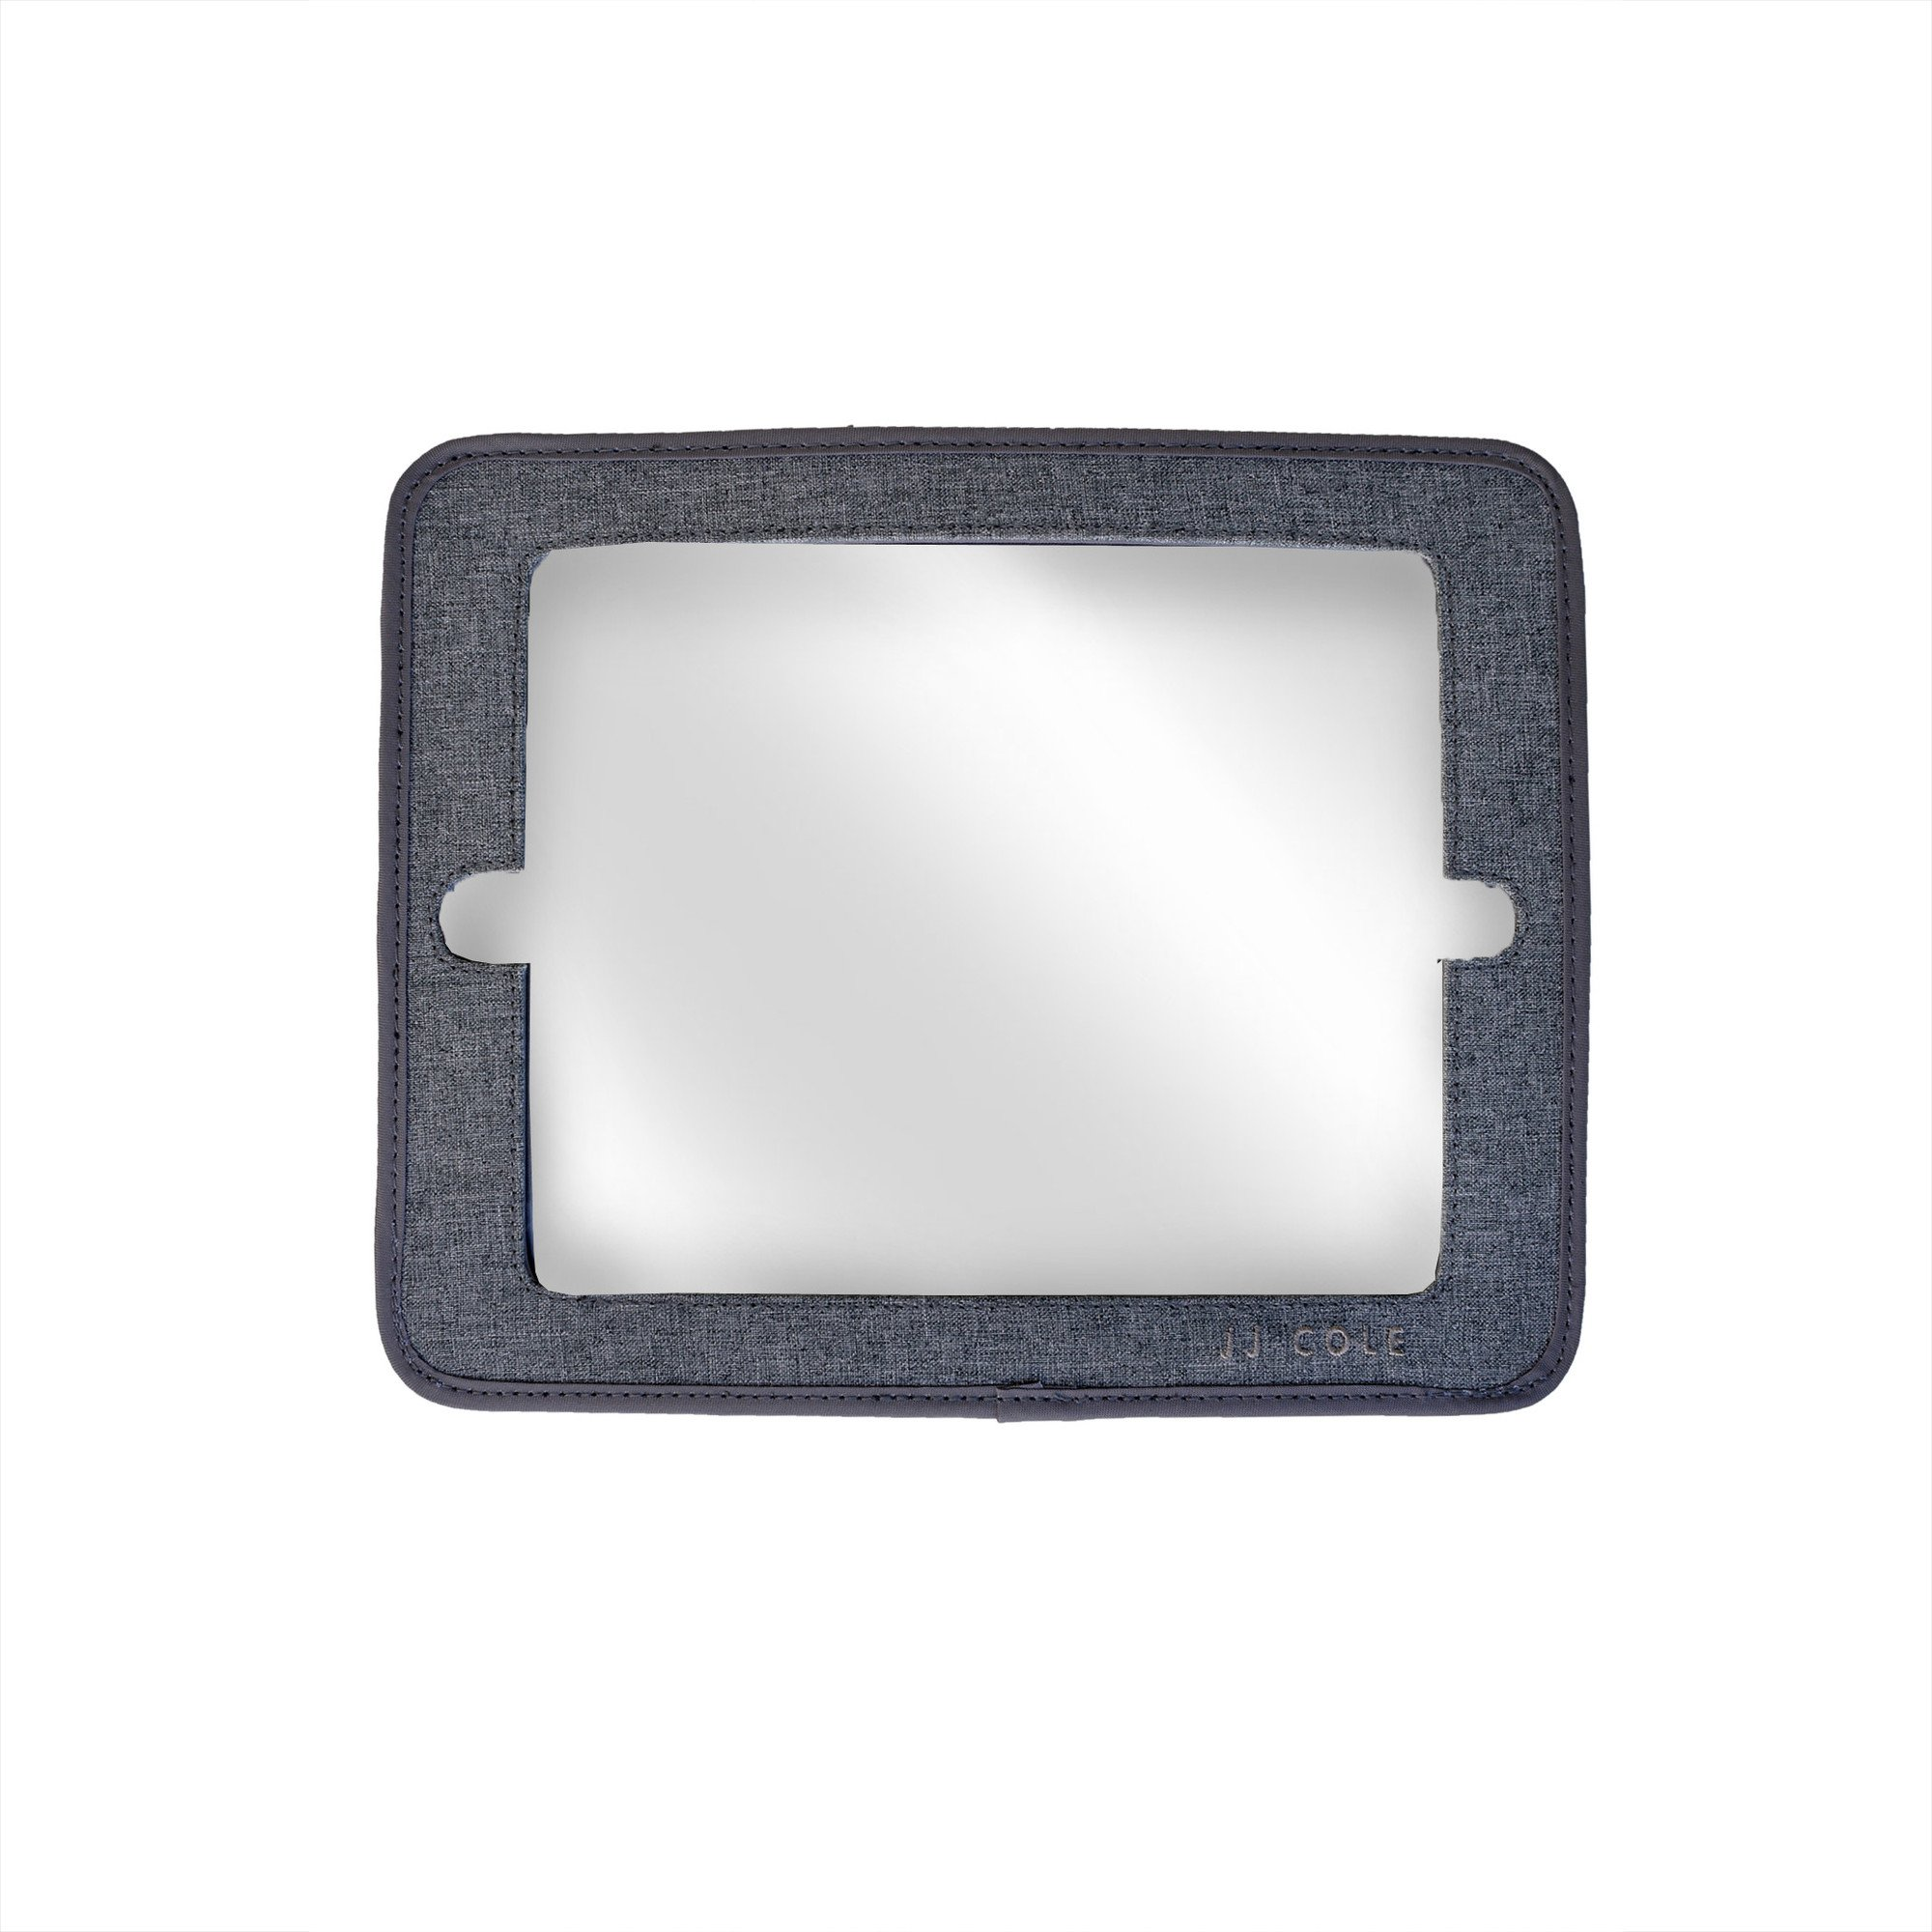 JJ Cole 2-in-1 Mirror and Tablet Holder by JJ Cole